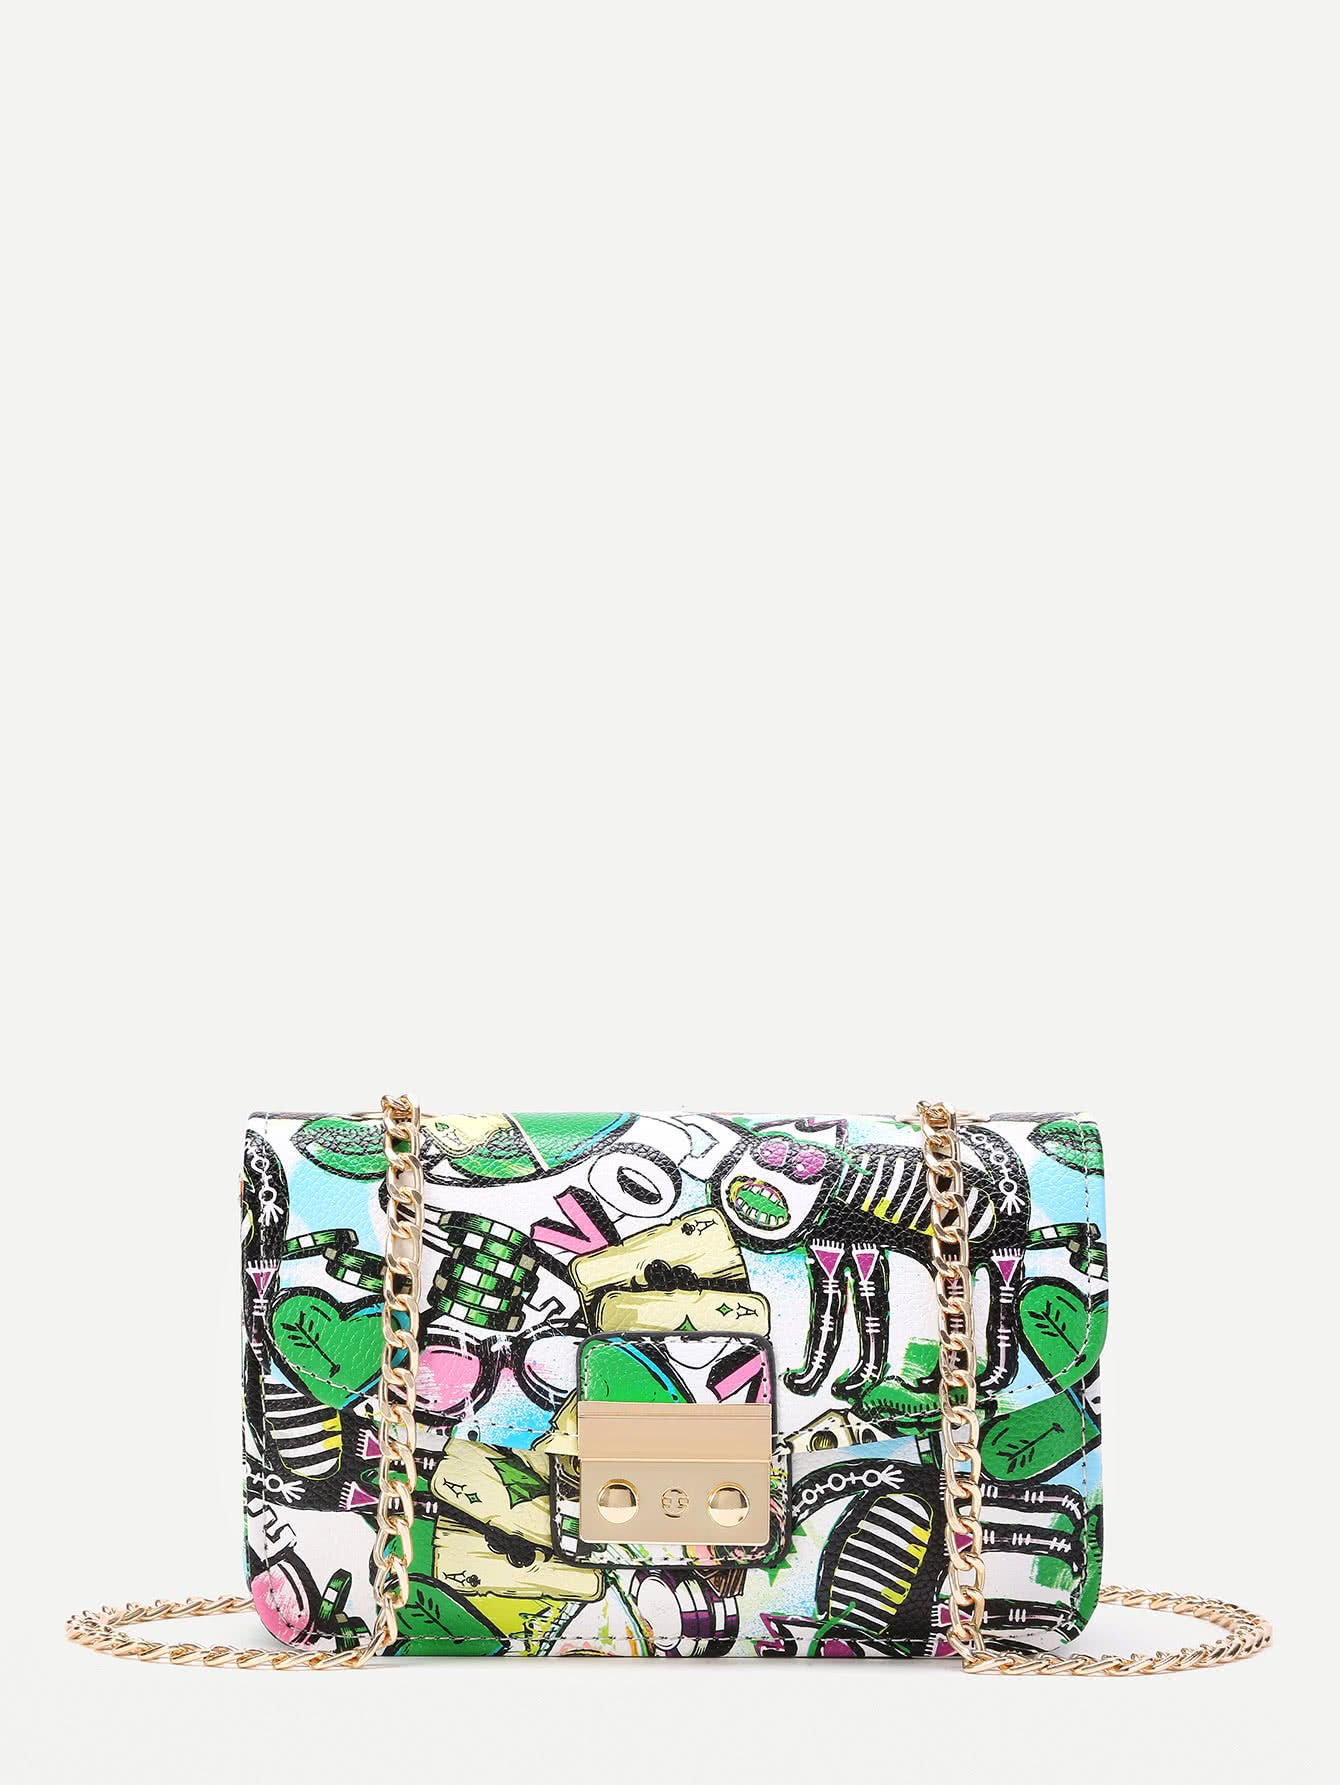 Paint Splash Snap Lock Bag